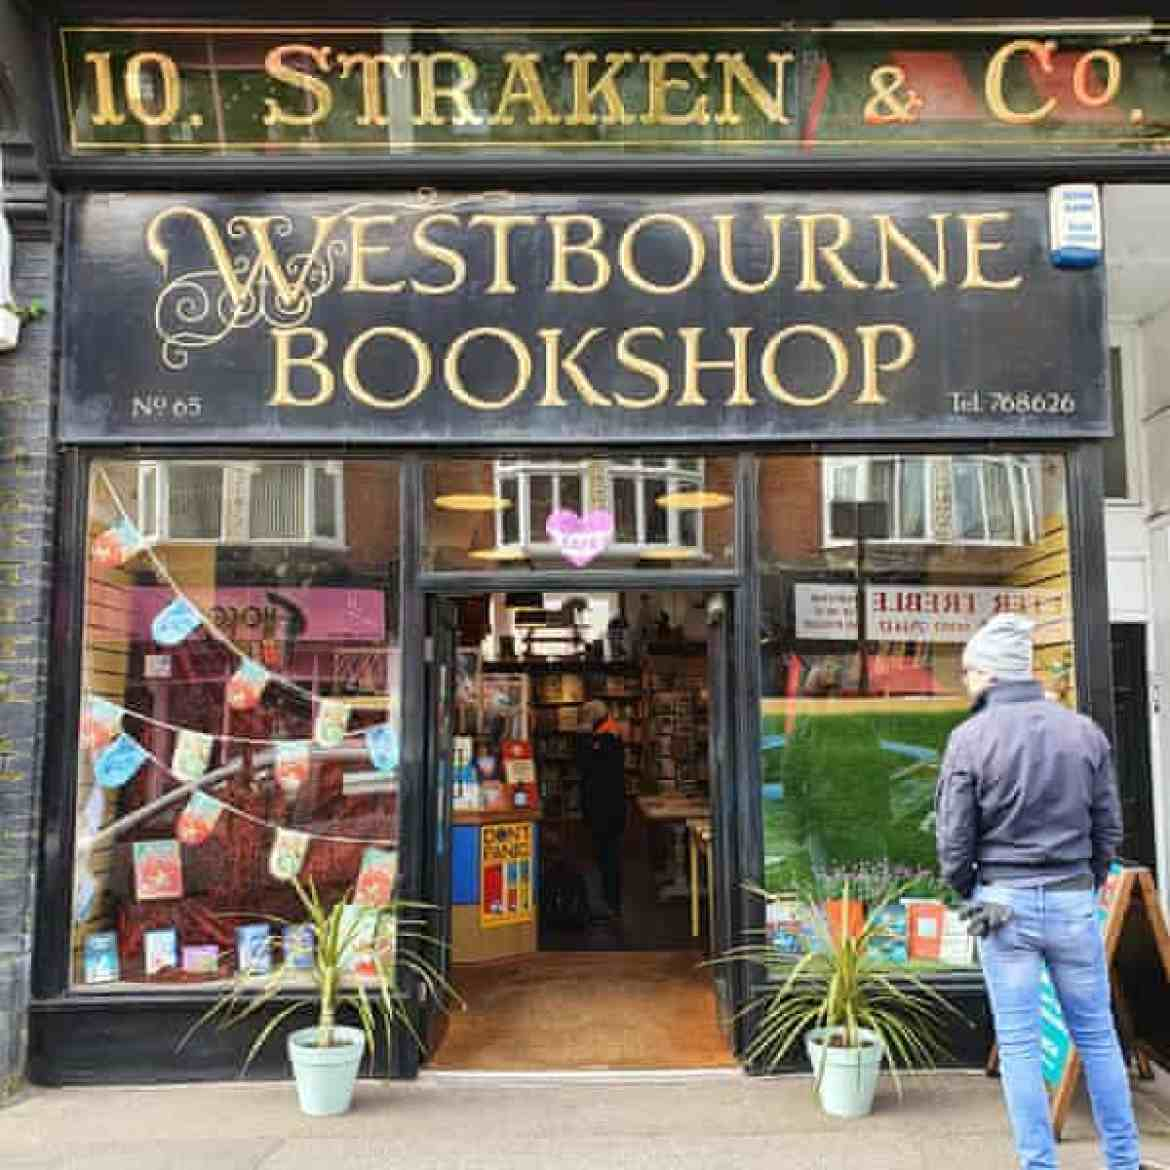 Westbourne Bookshop in Bournemouth